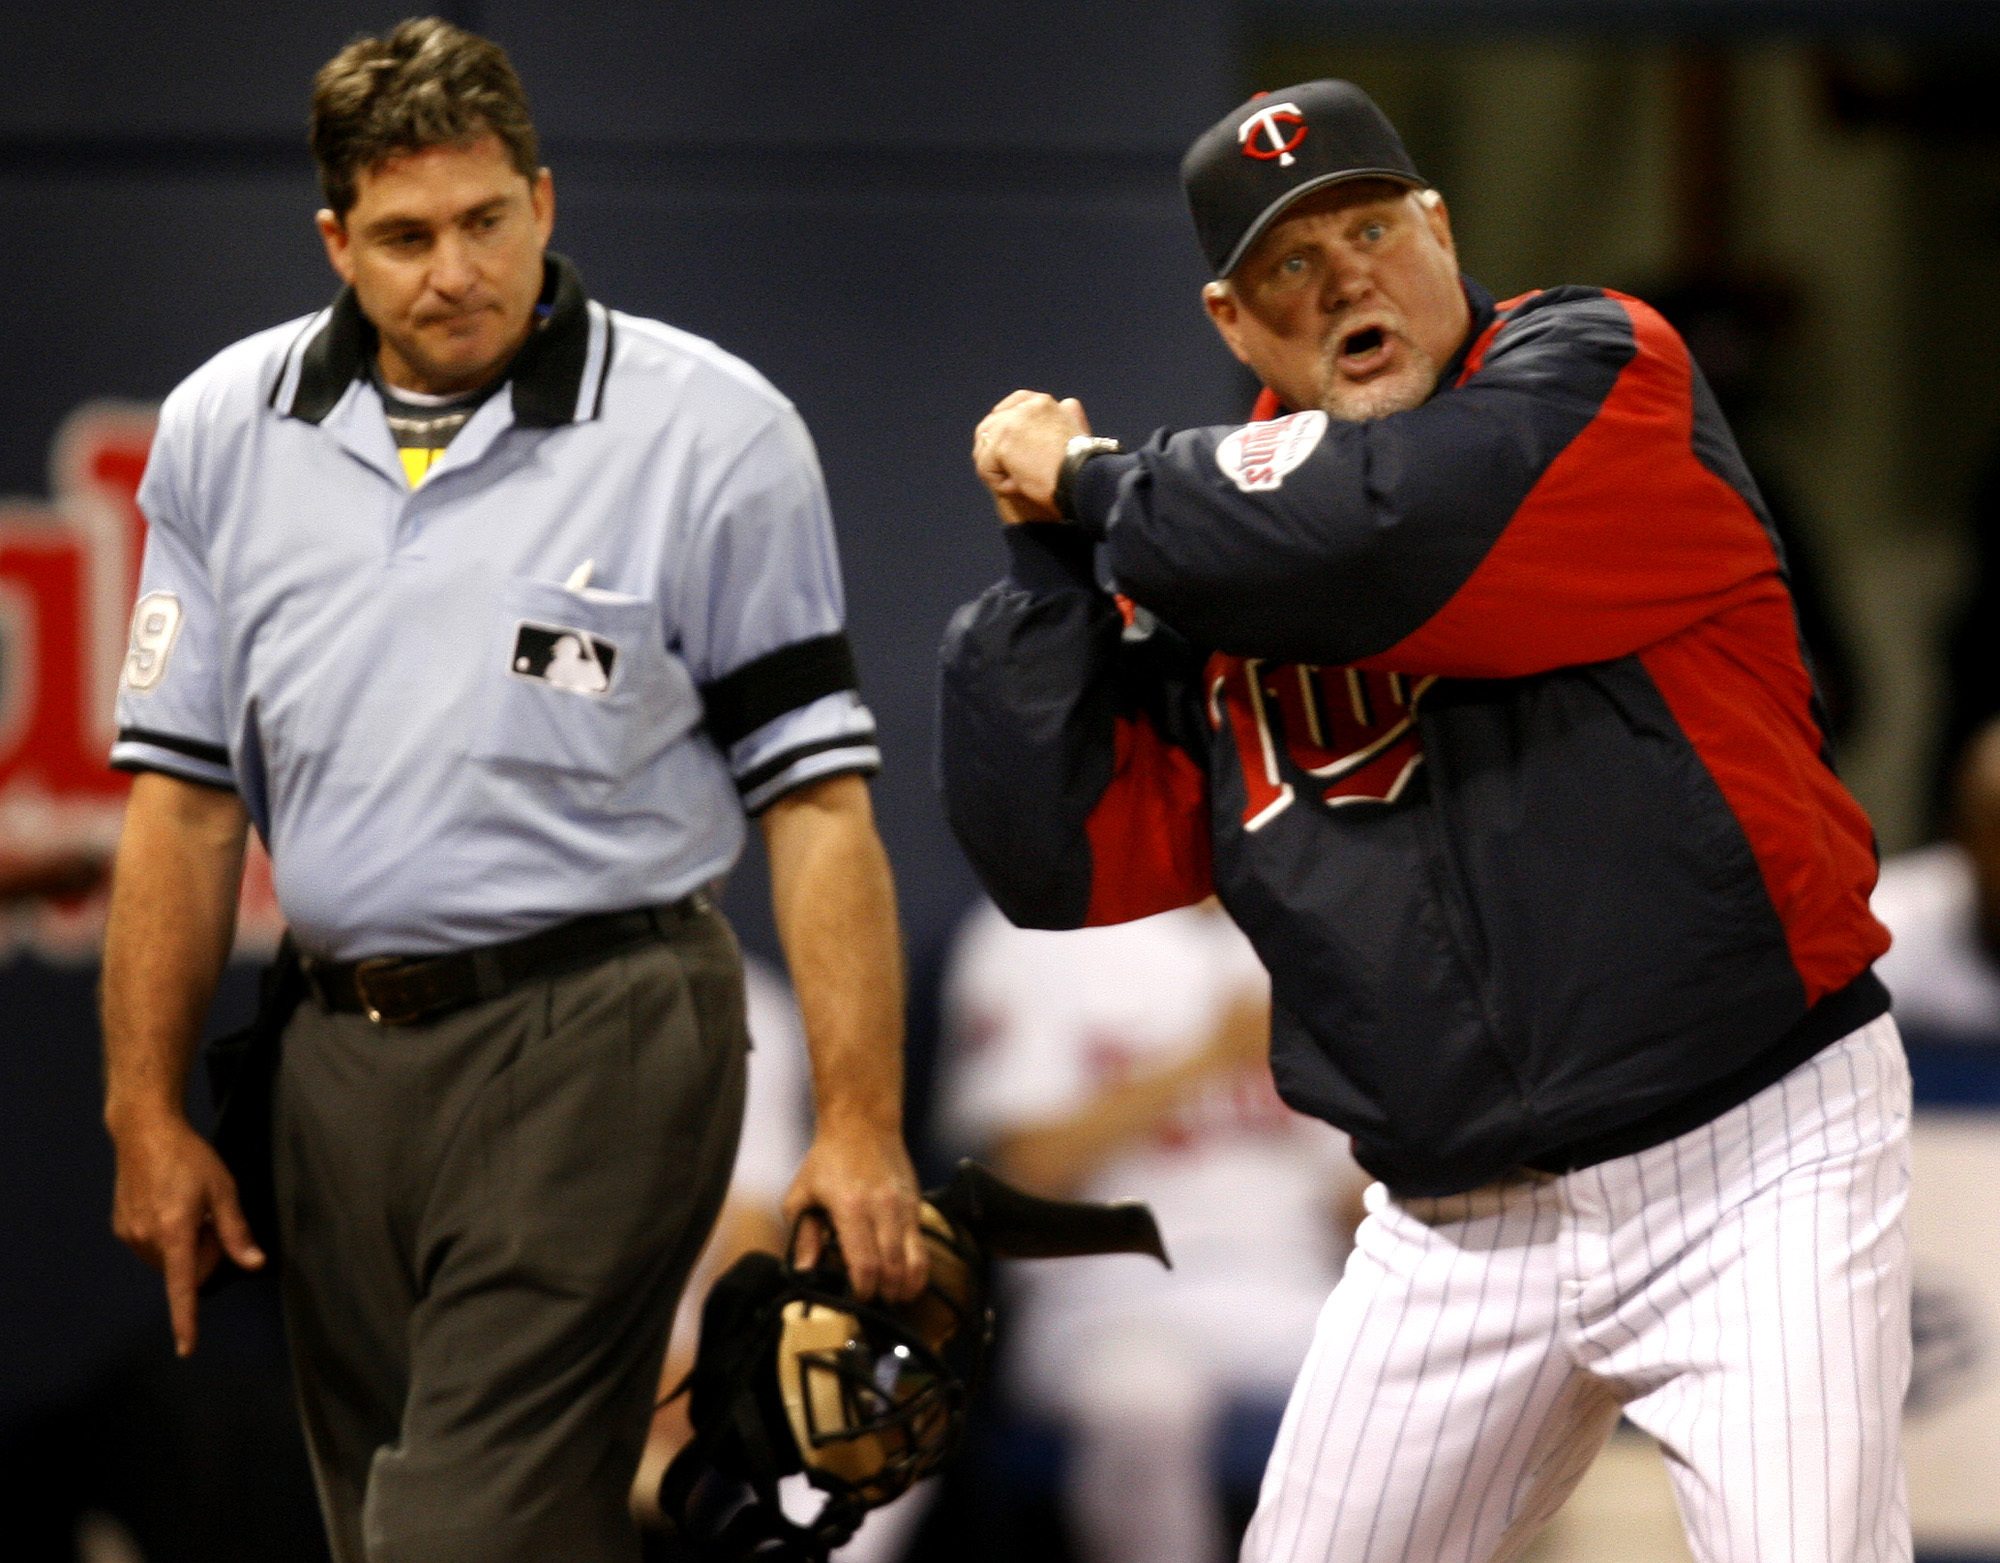 JERRY HOLT ¥jgholt@startribune.com Twins vs Baltimore----Minnesota Twins manger Ron Gardenhire was kicked out of the game for auguring a third a strike against Michael Cuddyer by home plate umpire Ed Rapuano in the 4th inning.